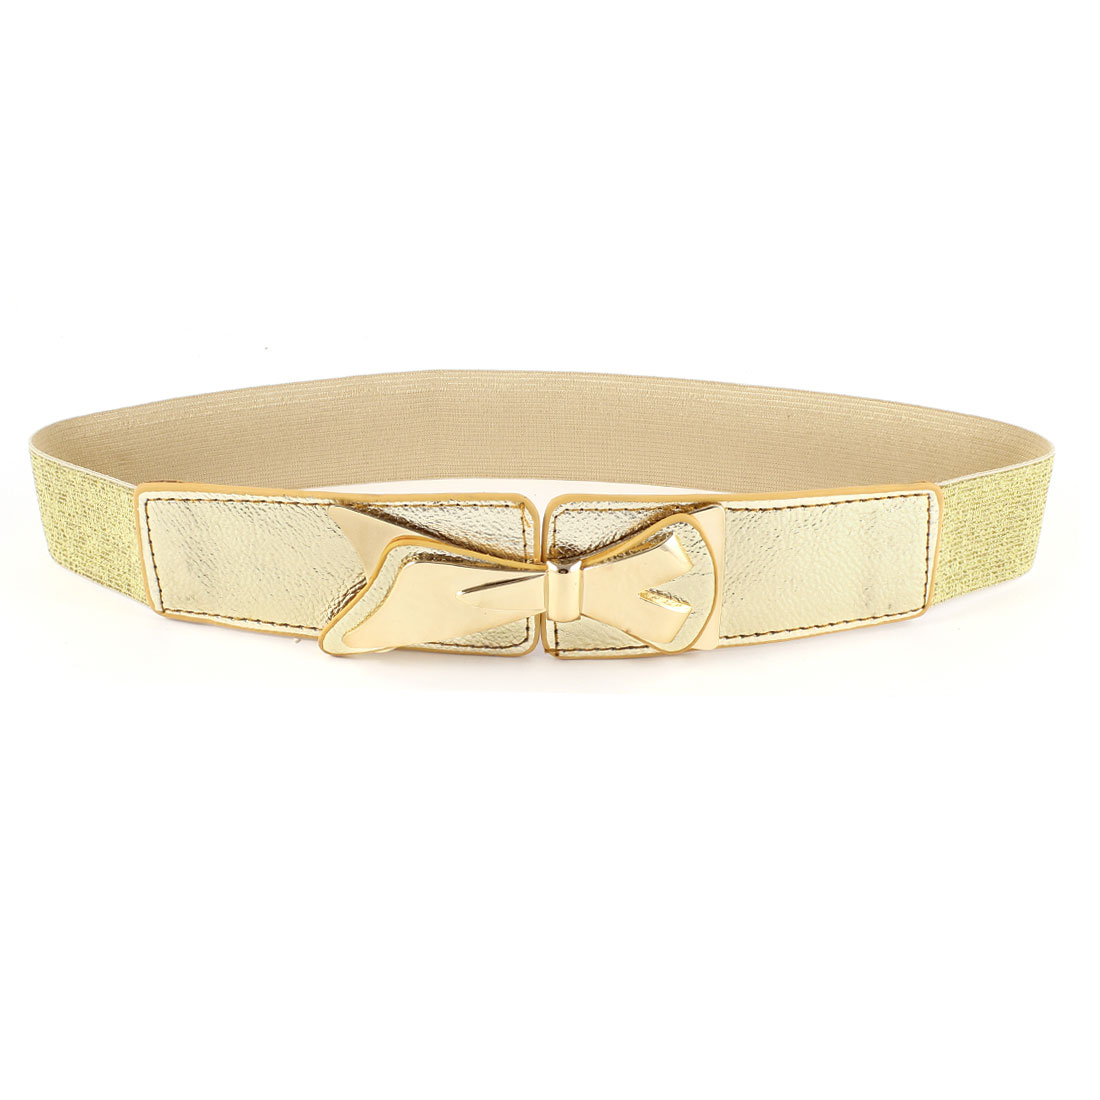 Gold Tone Bowknot Decor Faux Leather Interlock Buckle Elastic Belt for Lady